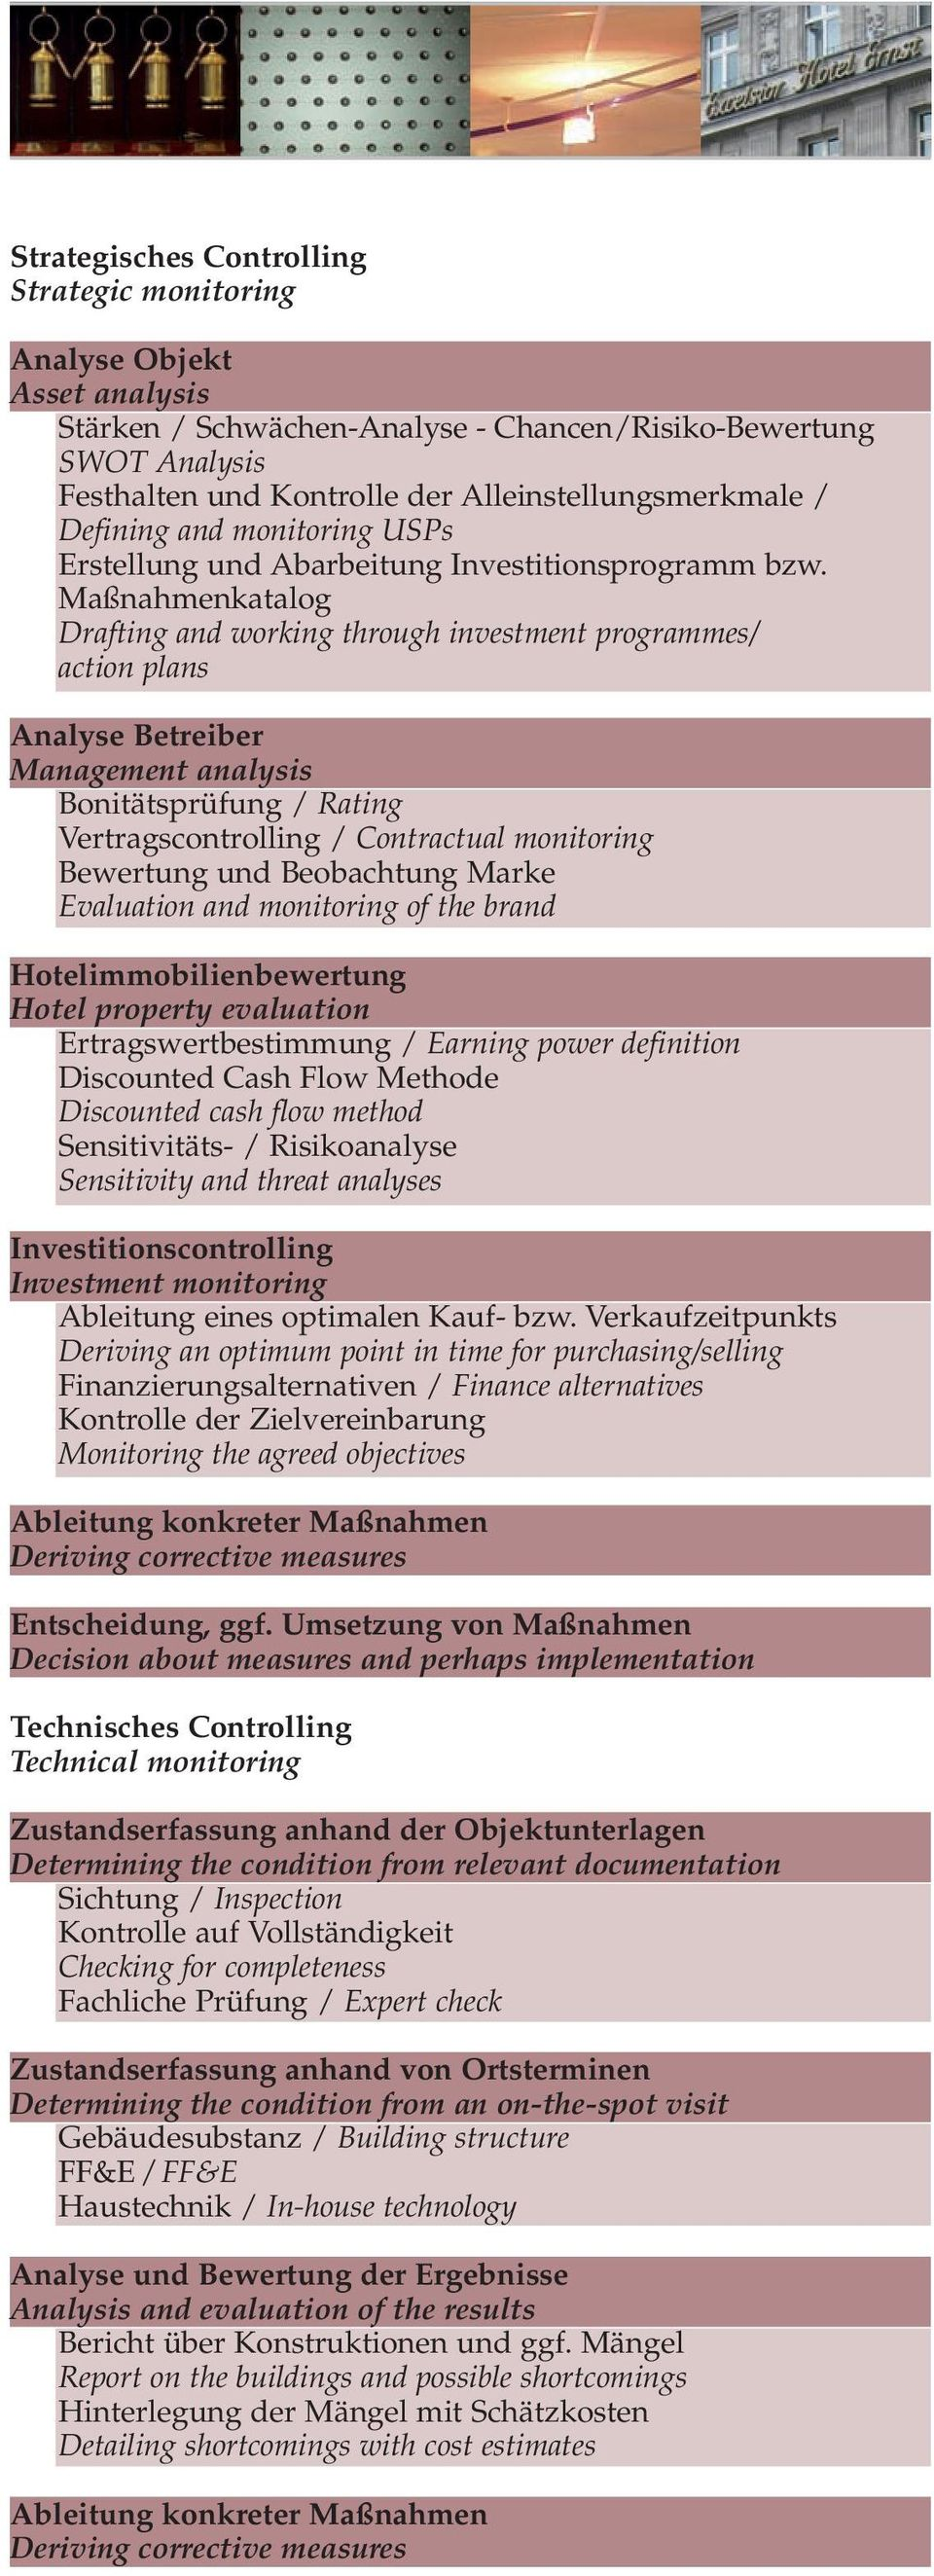 Maßnahmenkatalog Drafting and working through investment programmes/ action plans Analyse Betreiber Management analysis Bonitätsprüfung / Rating Vertragscontrolling / Contractual monitoring Bewertung